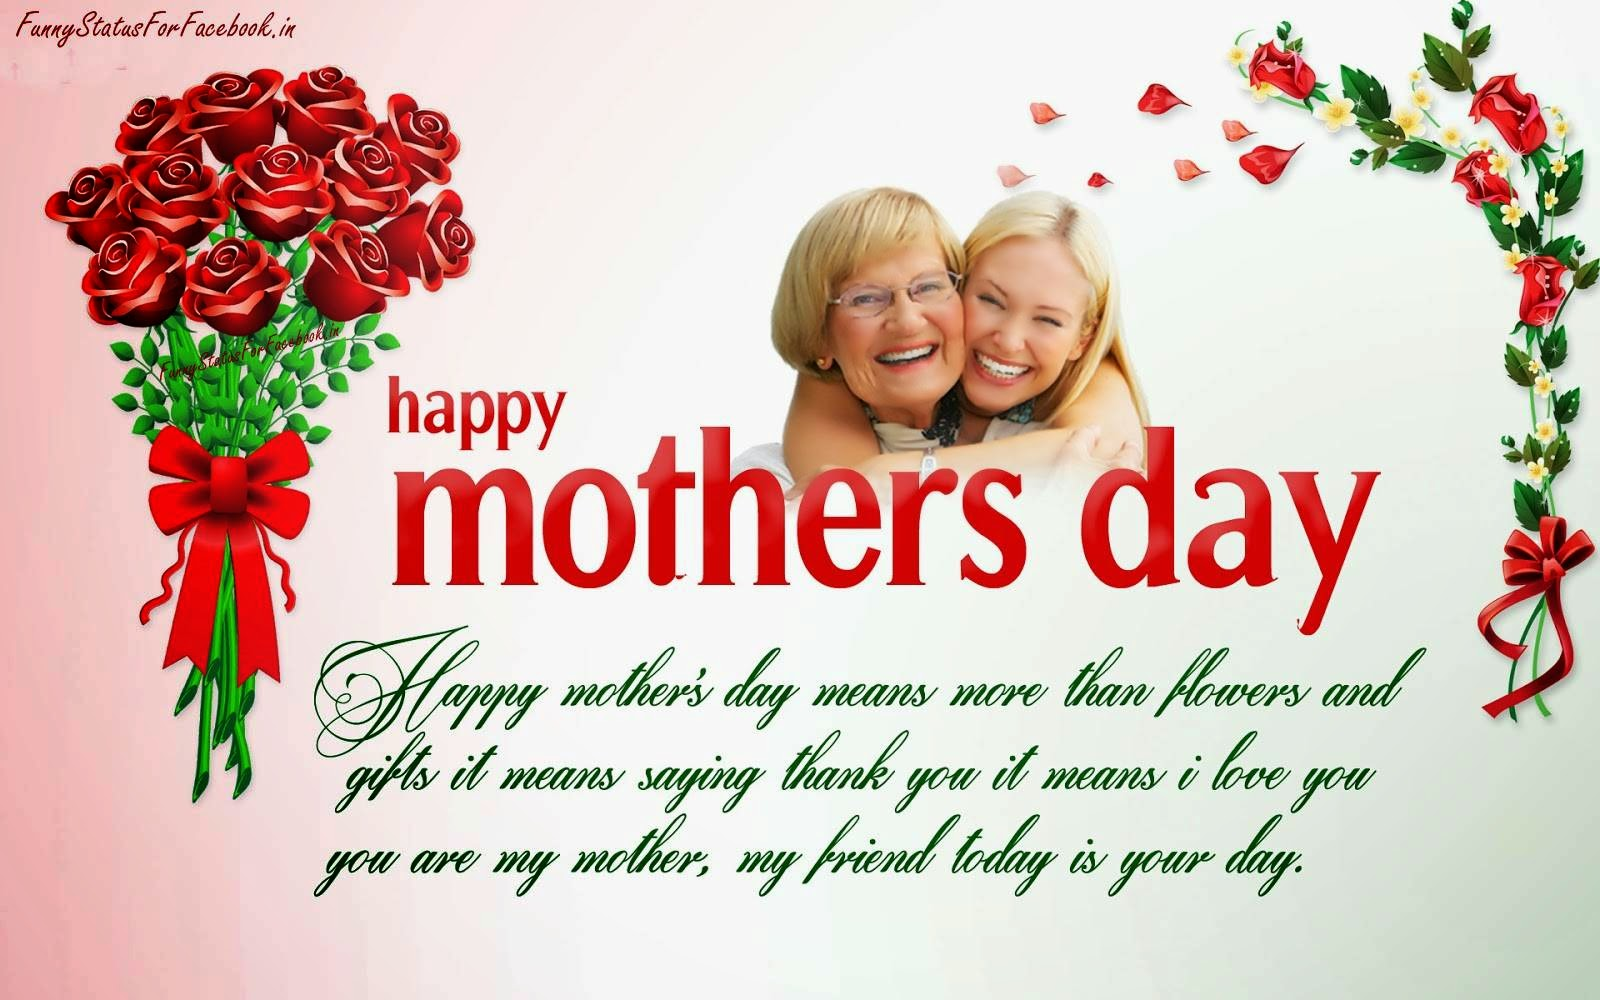 Happy mothers day quotes greeting cards wallpapers with messages happy mothers day means more than flowers and gifts it means saying thank you it means kristyandbryce Gallery